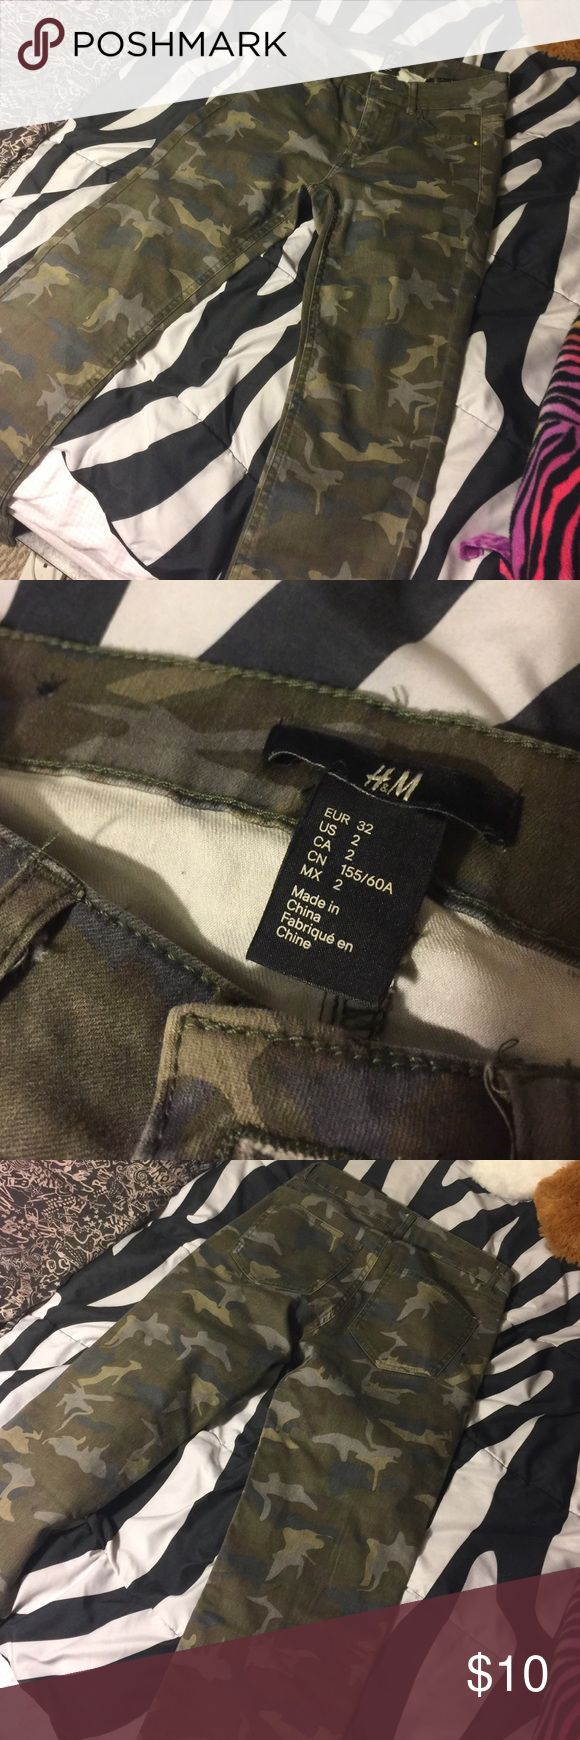 CAMO SKINNY JEANS! Camo skinny jeans from h&m size 2, too small for me never worn front and back pockets front zipper and button perfect condition H&M Pants Skinny